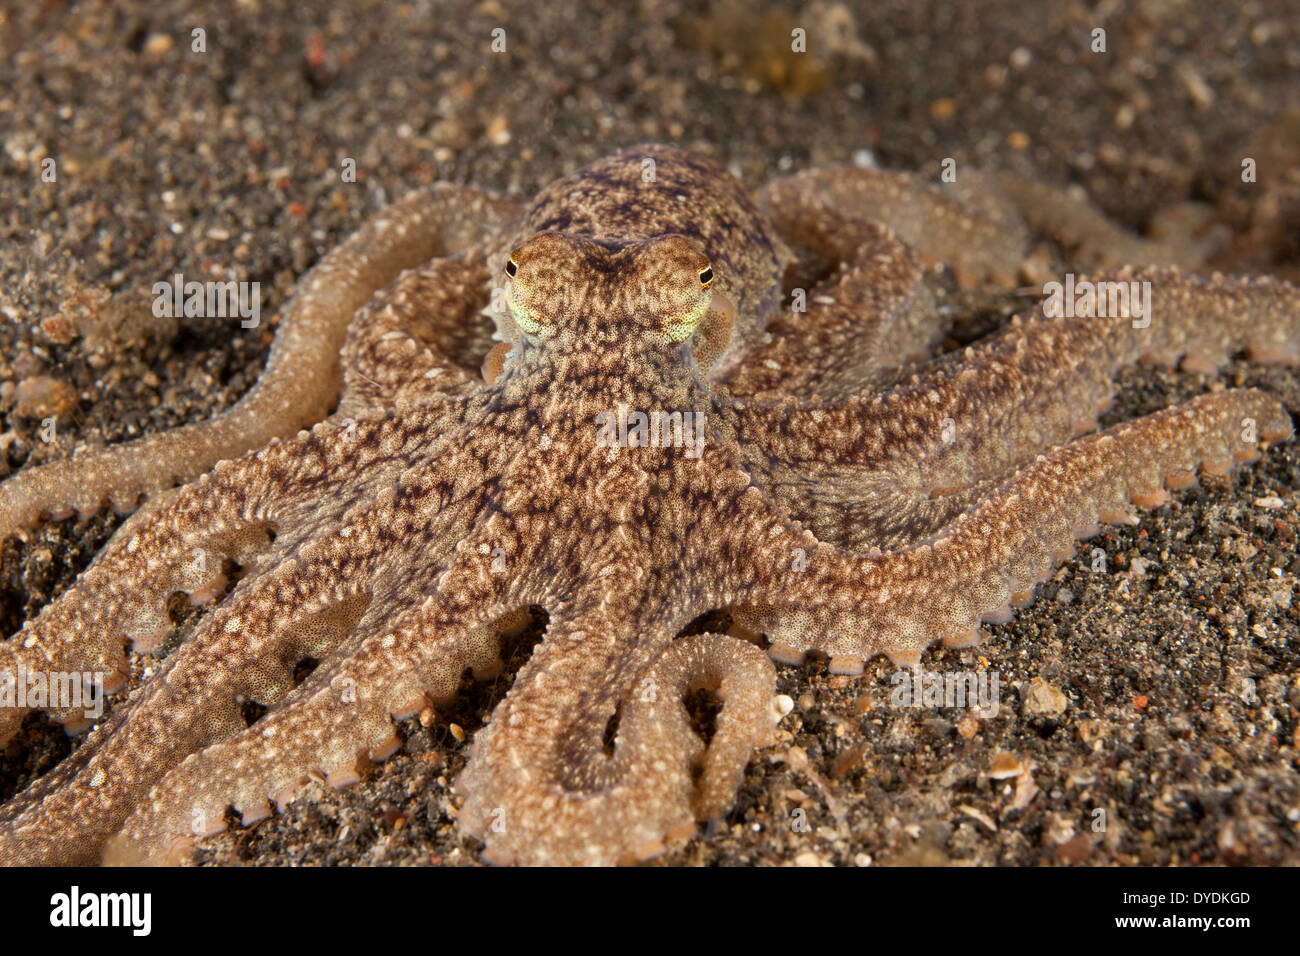 Long Arm Octopus (Octopus sp.), this as yet un-named and undescribed species is common in the Lembeh Strait - Stock Image